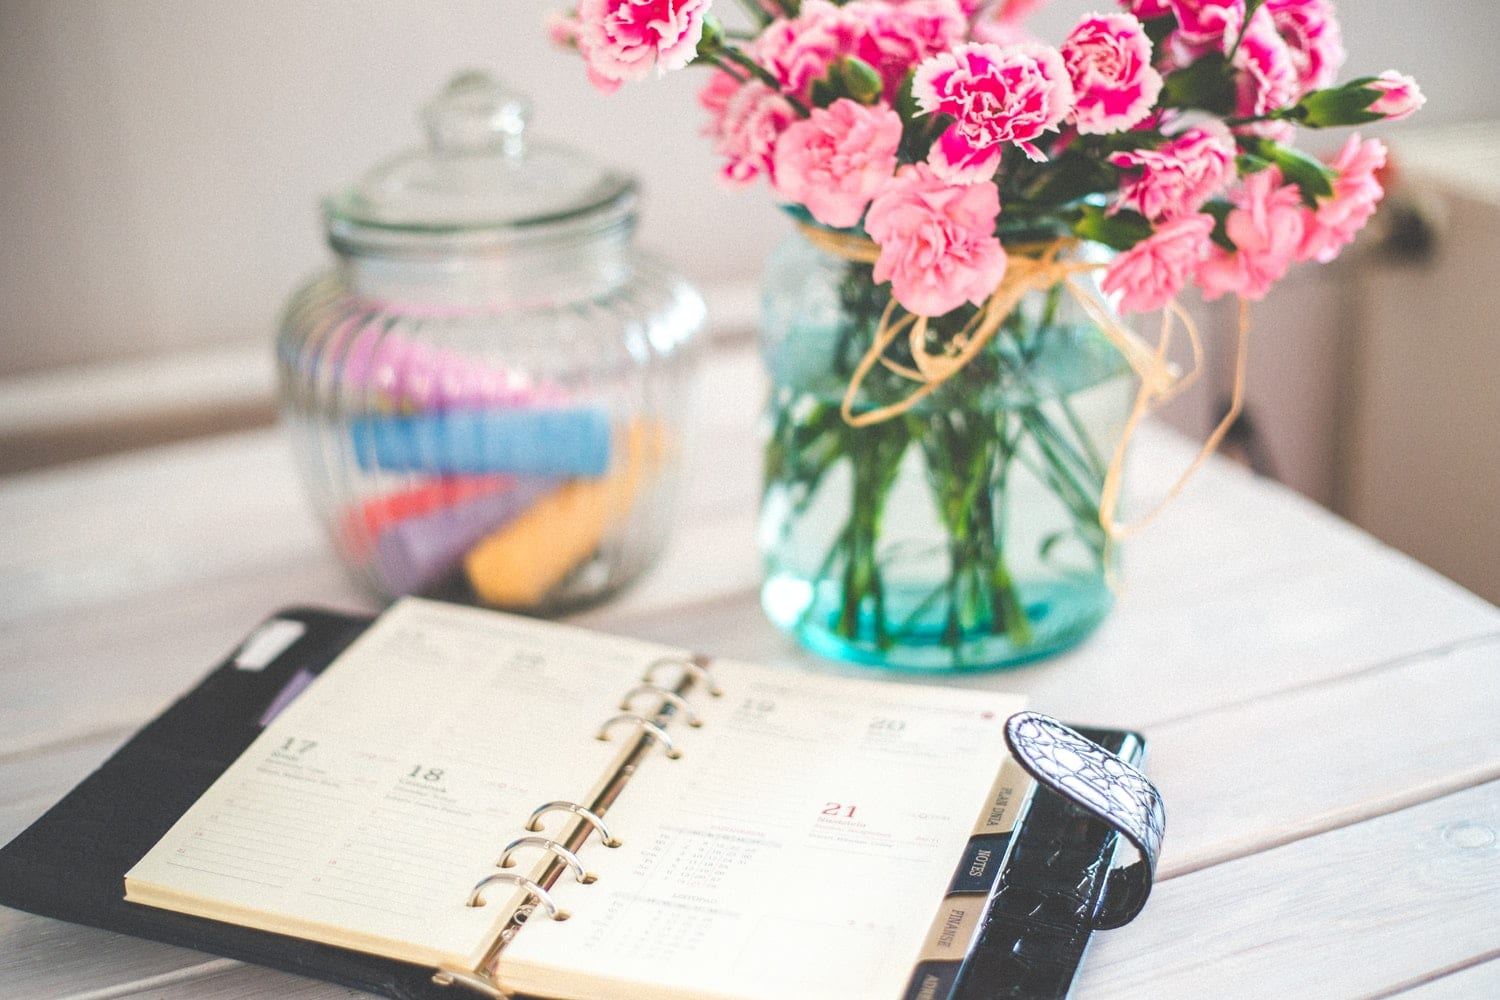 Planner and flowers on desk